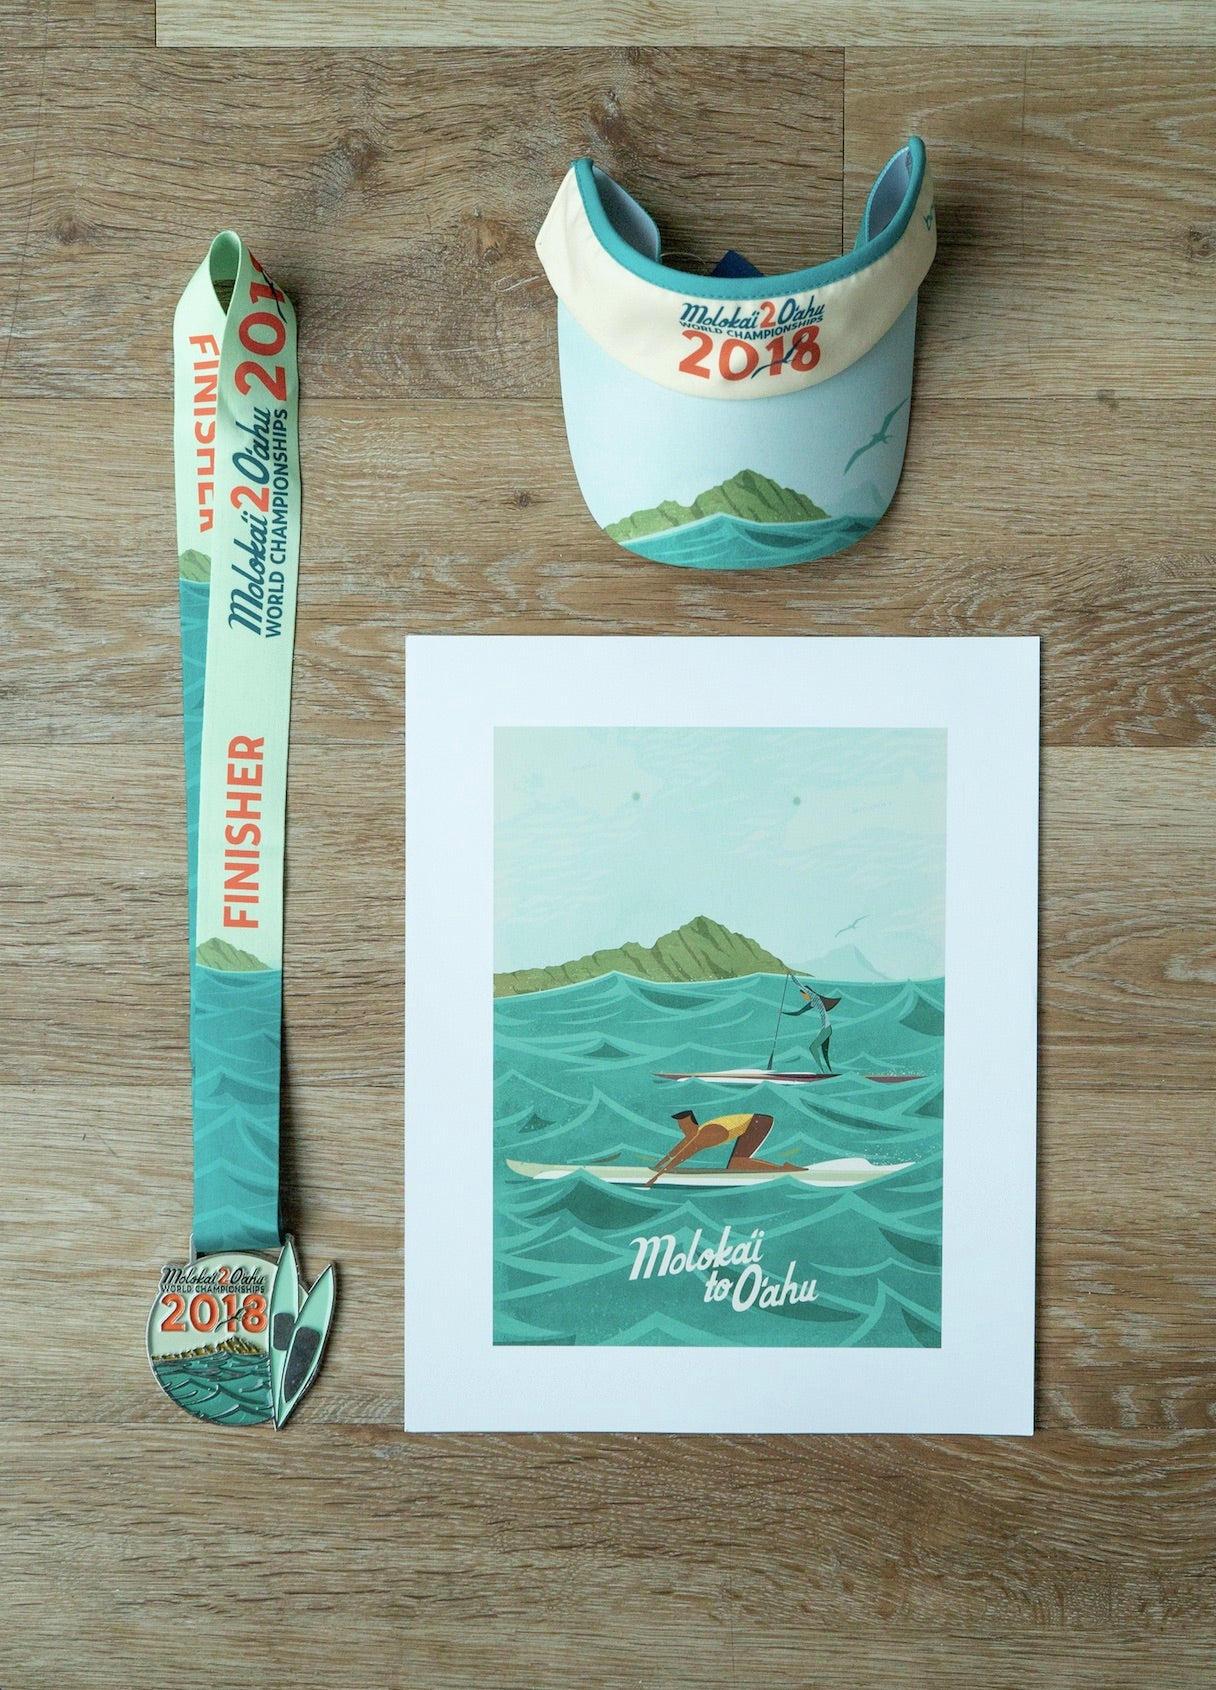 Nick Kuchar Molokai 2 Oahu Race Art Merchandise